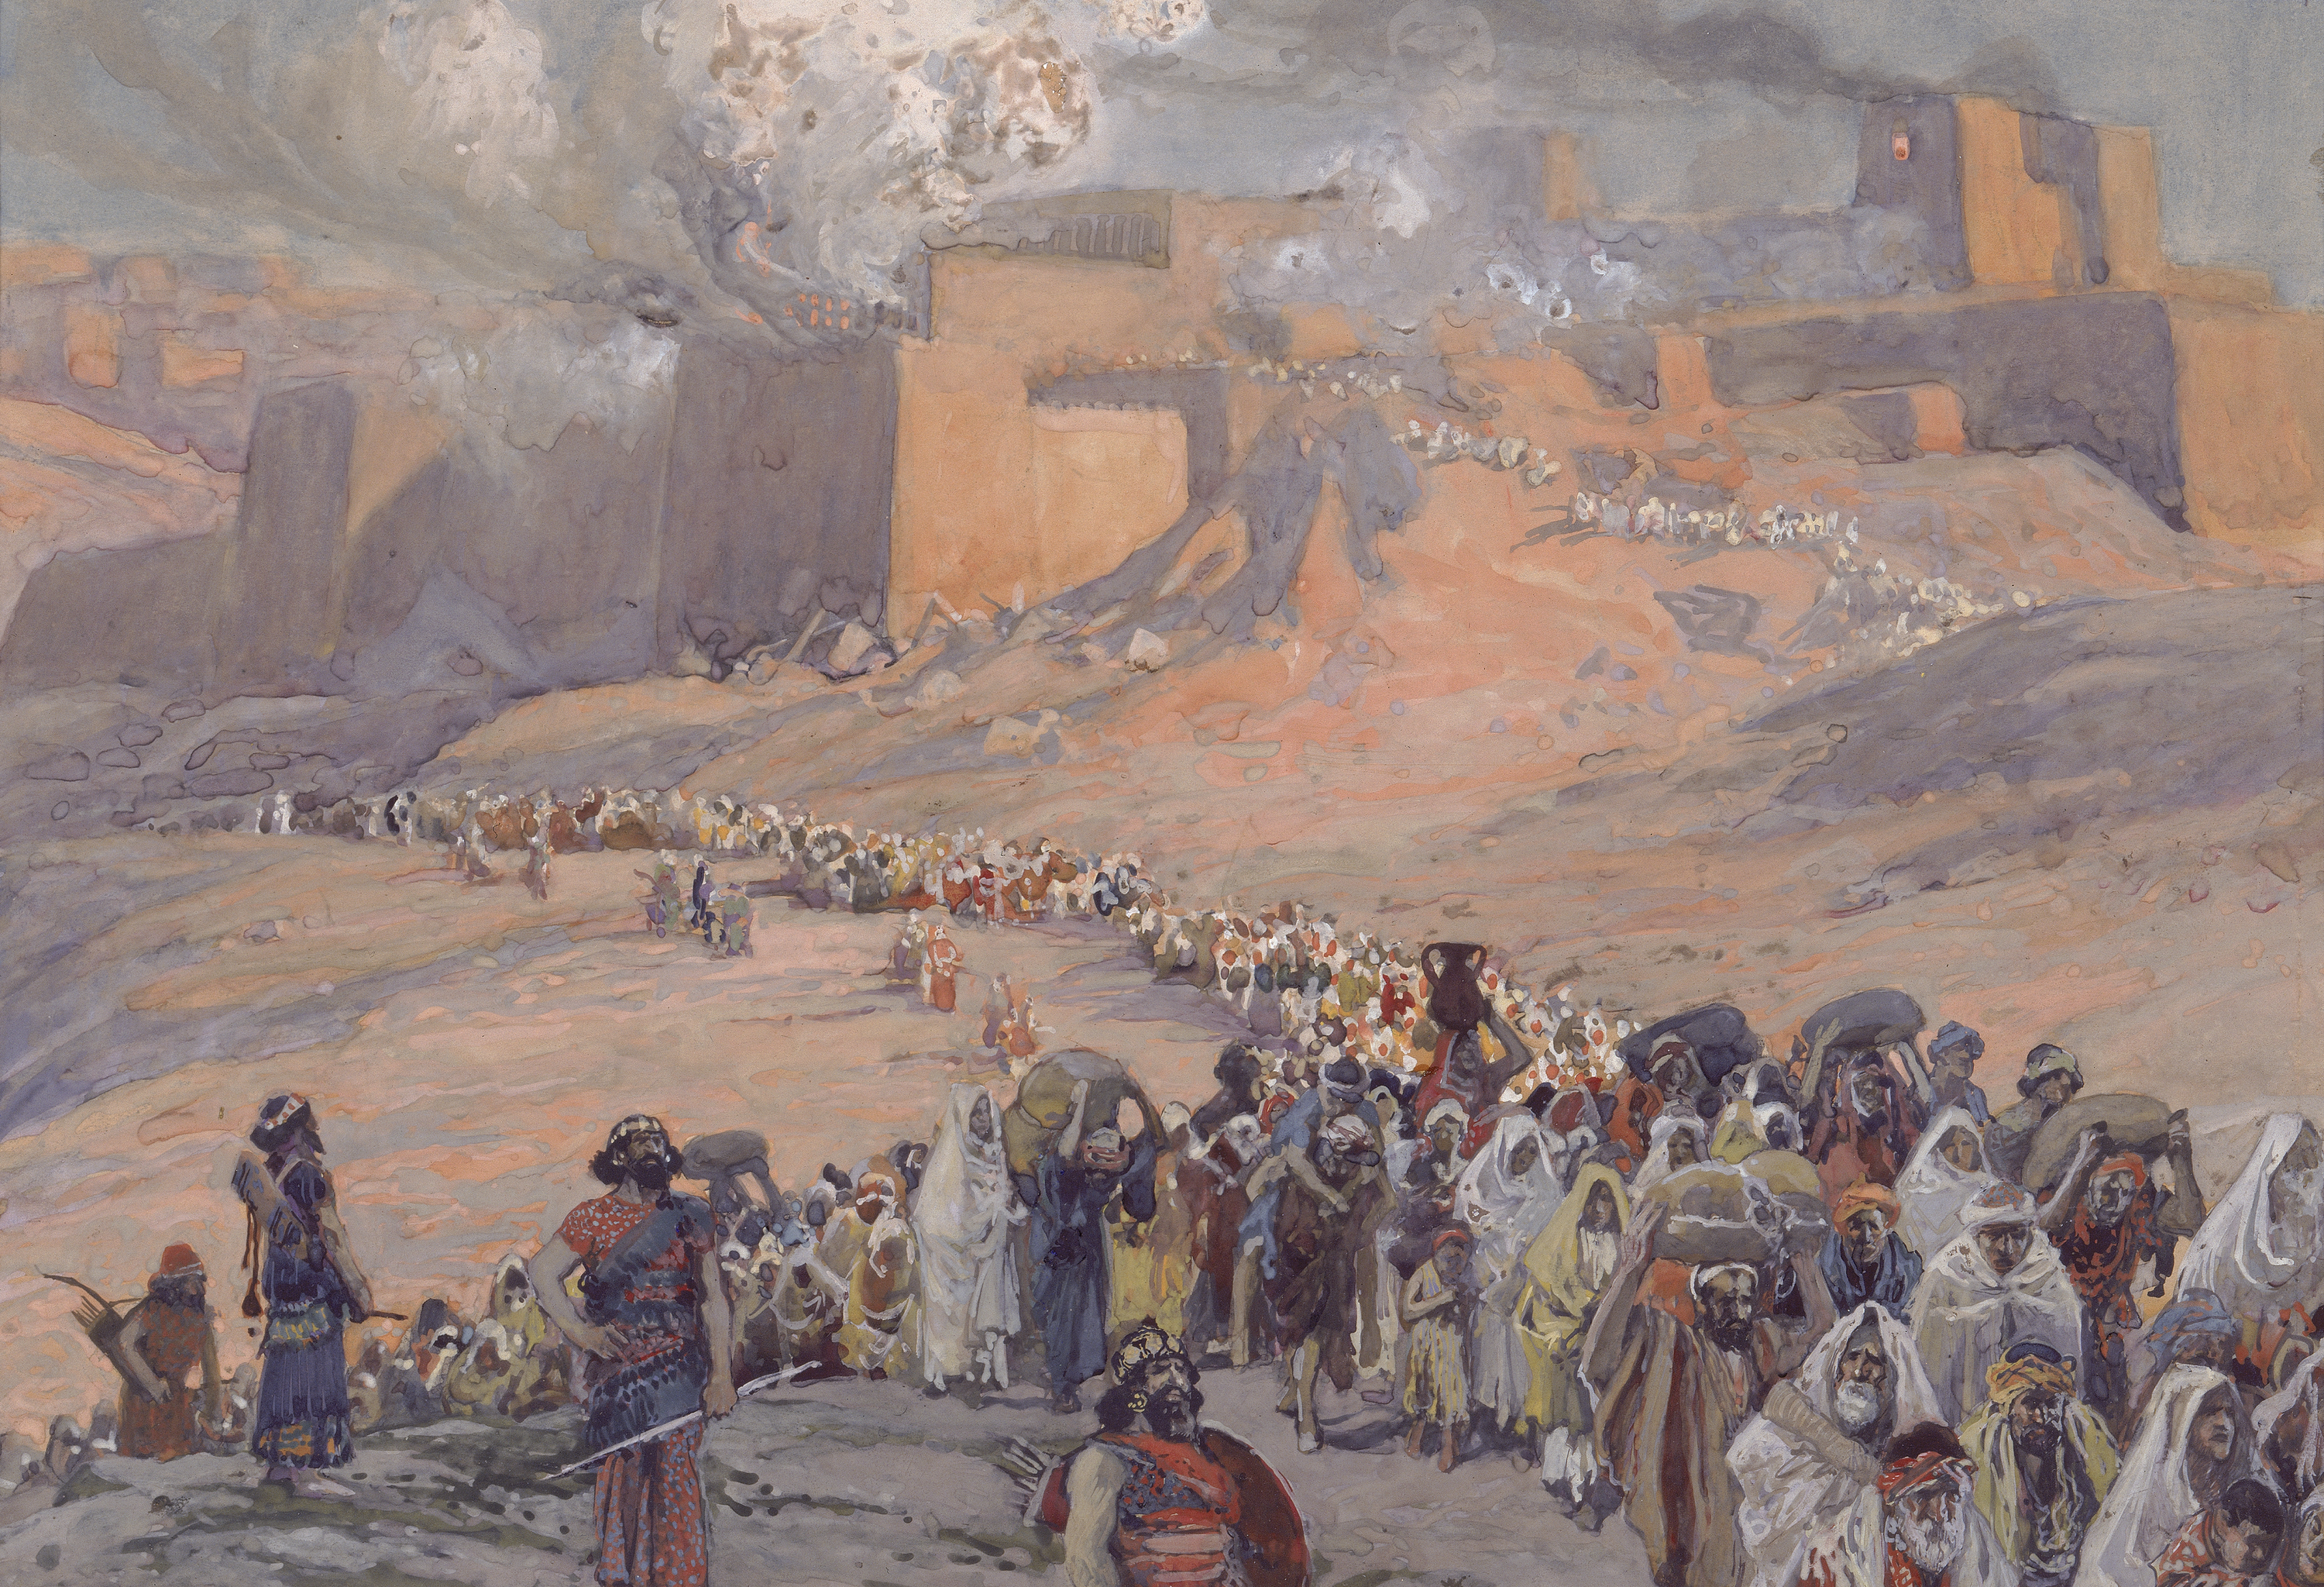 File:Tissot The Flight of the Prisoners.jpg